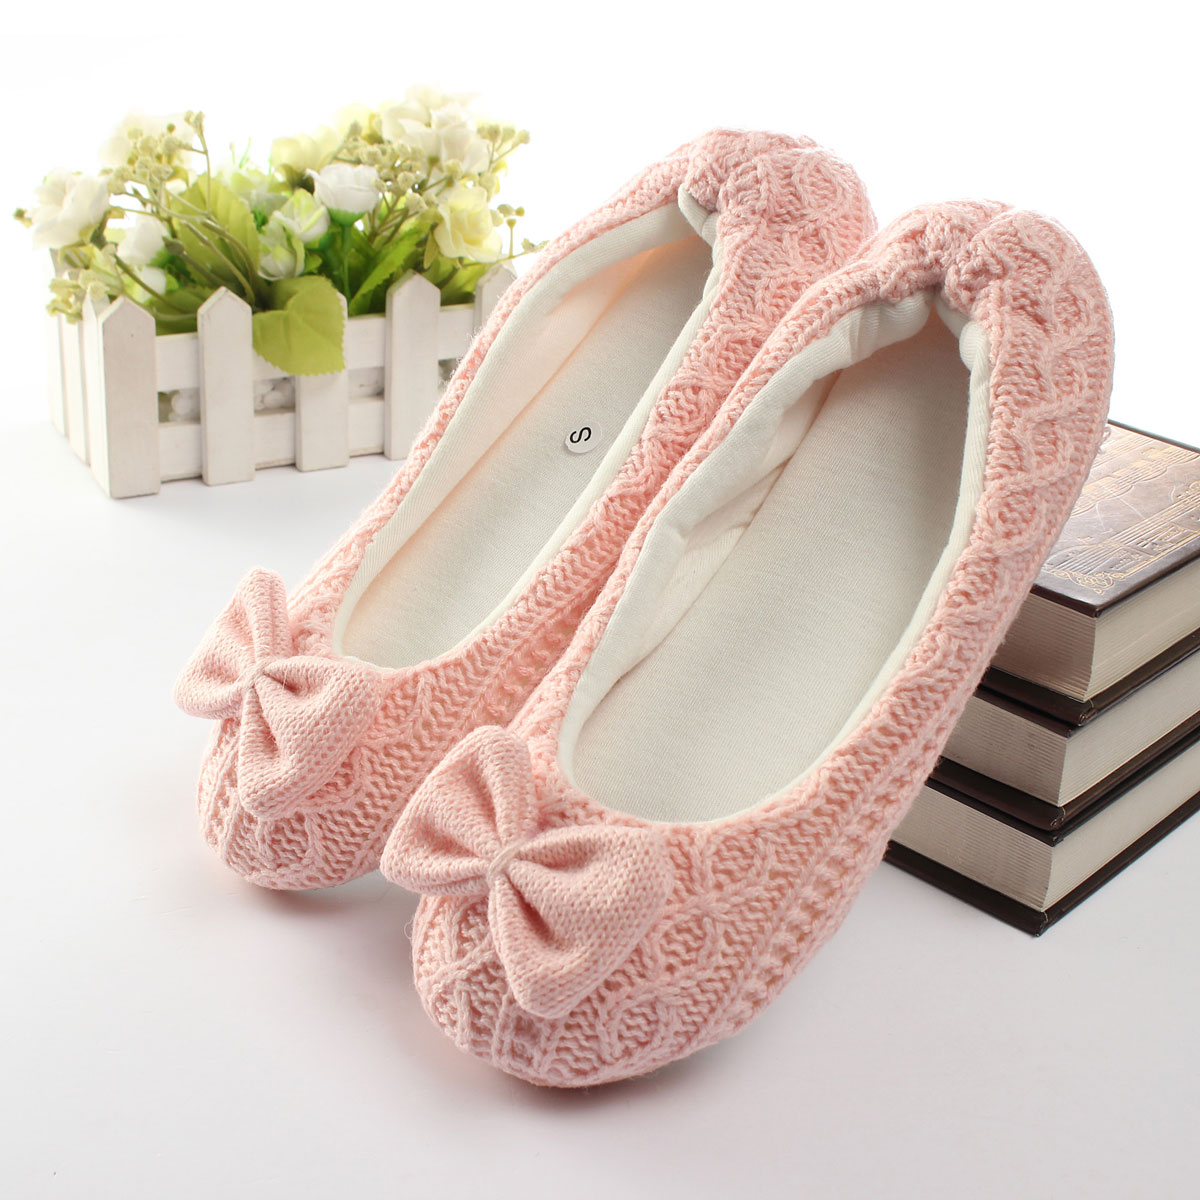 Women Soft Sole Winter Bow Bowtie Crochet Knitted Indoor Dance Shoes Slippers